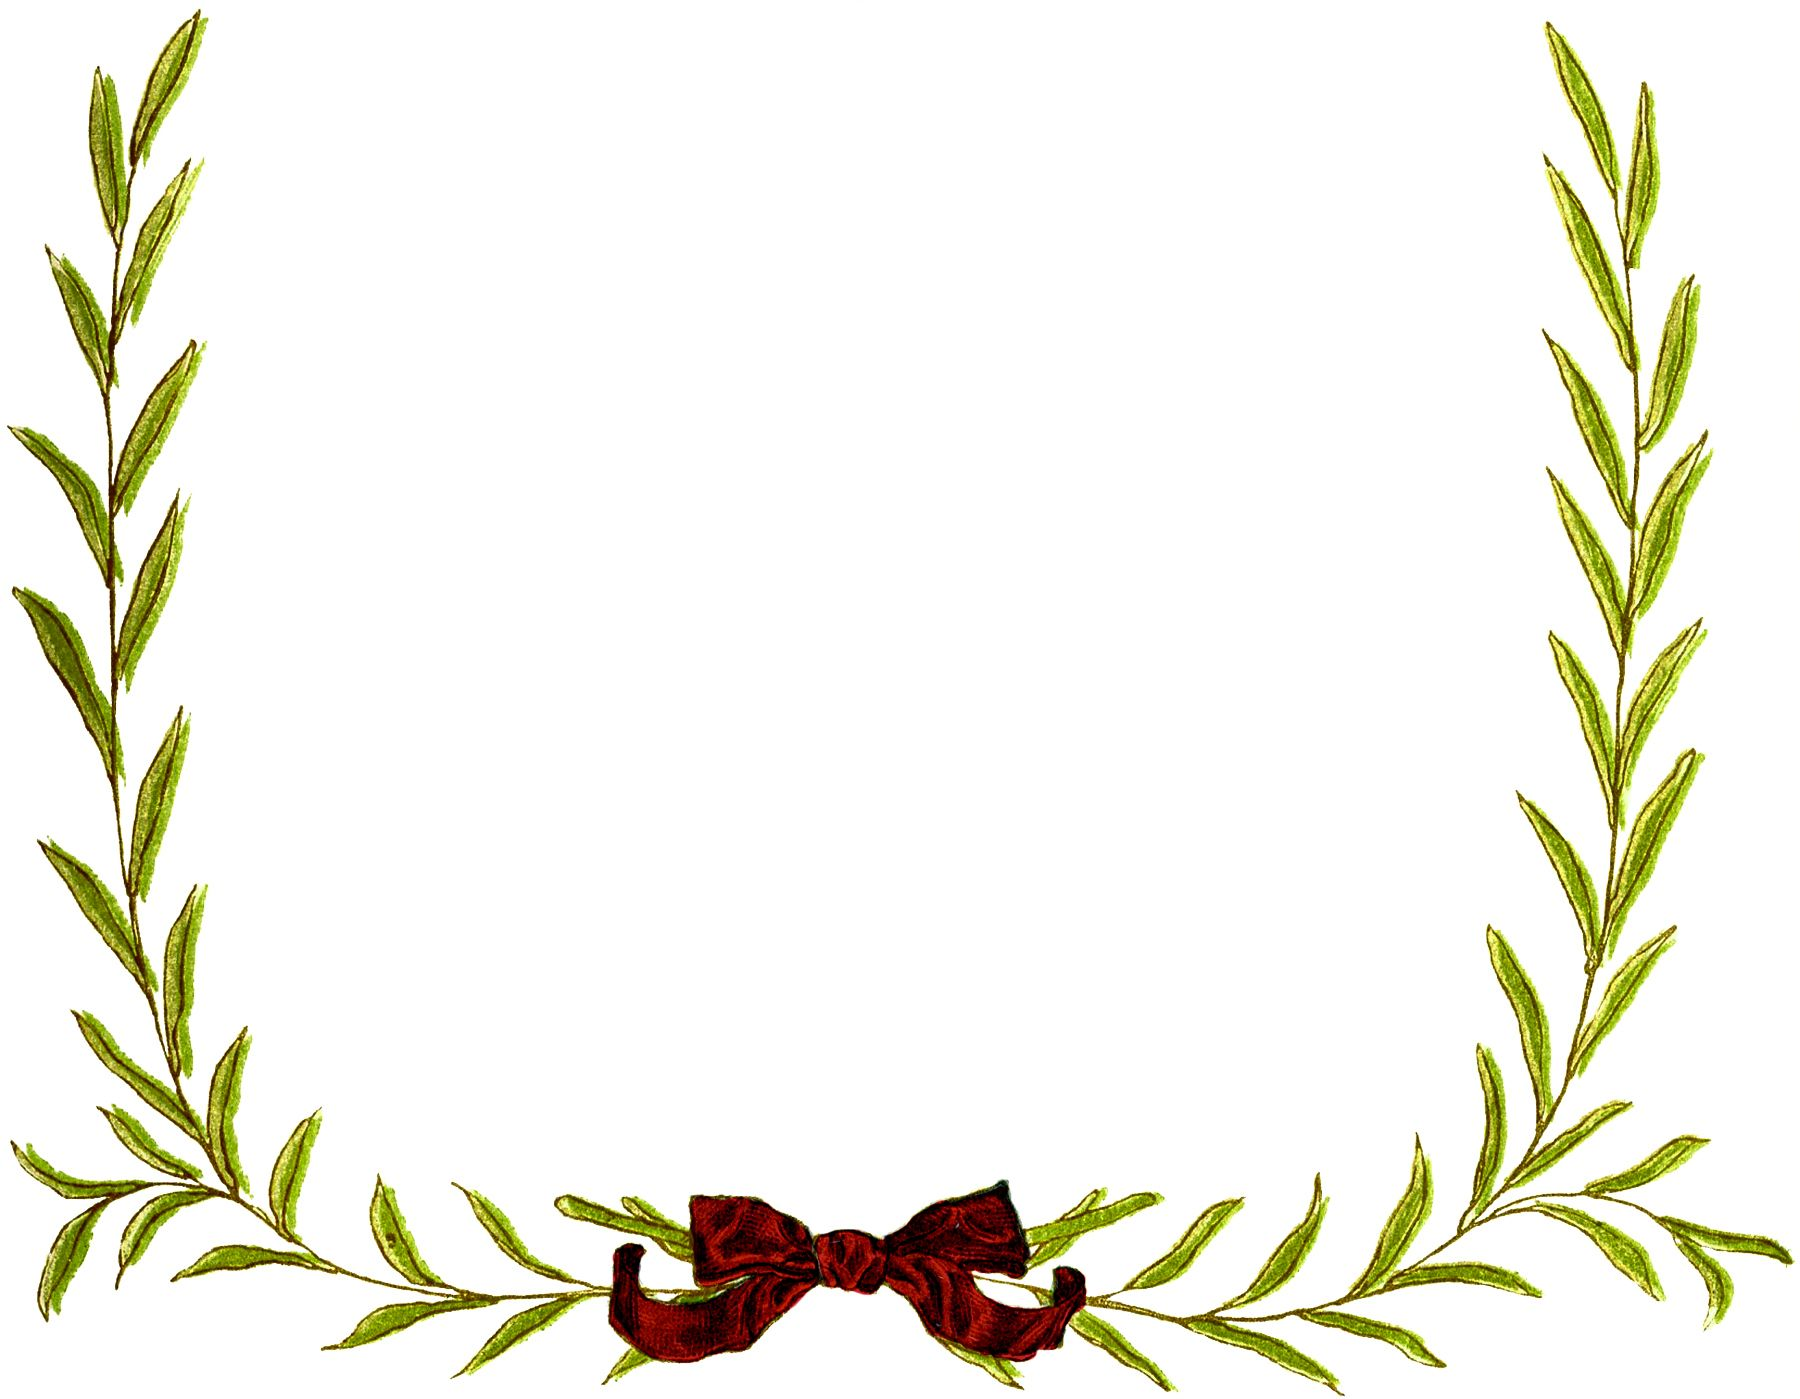 Simple Christmas Wreath Frame Images | Simple christmas, Wreaths and ...